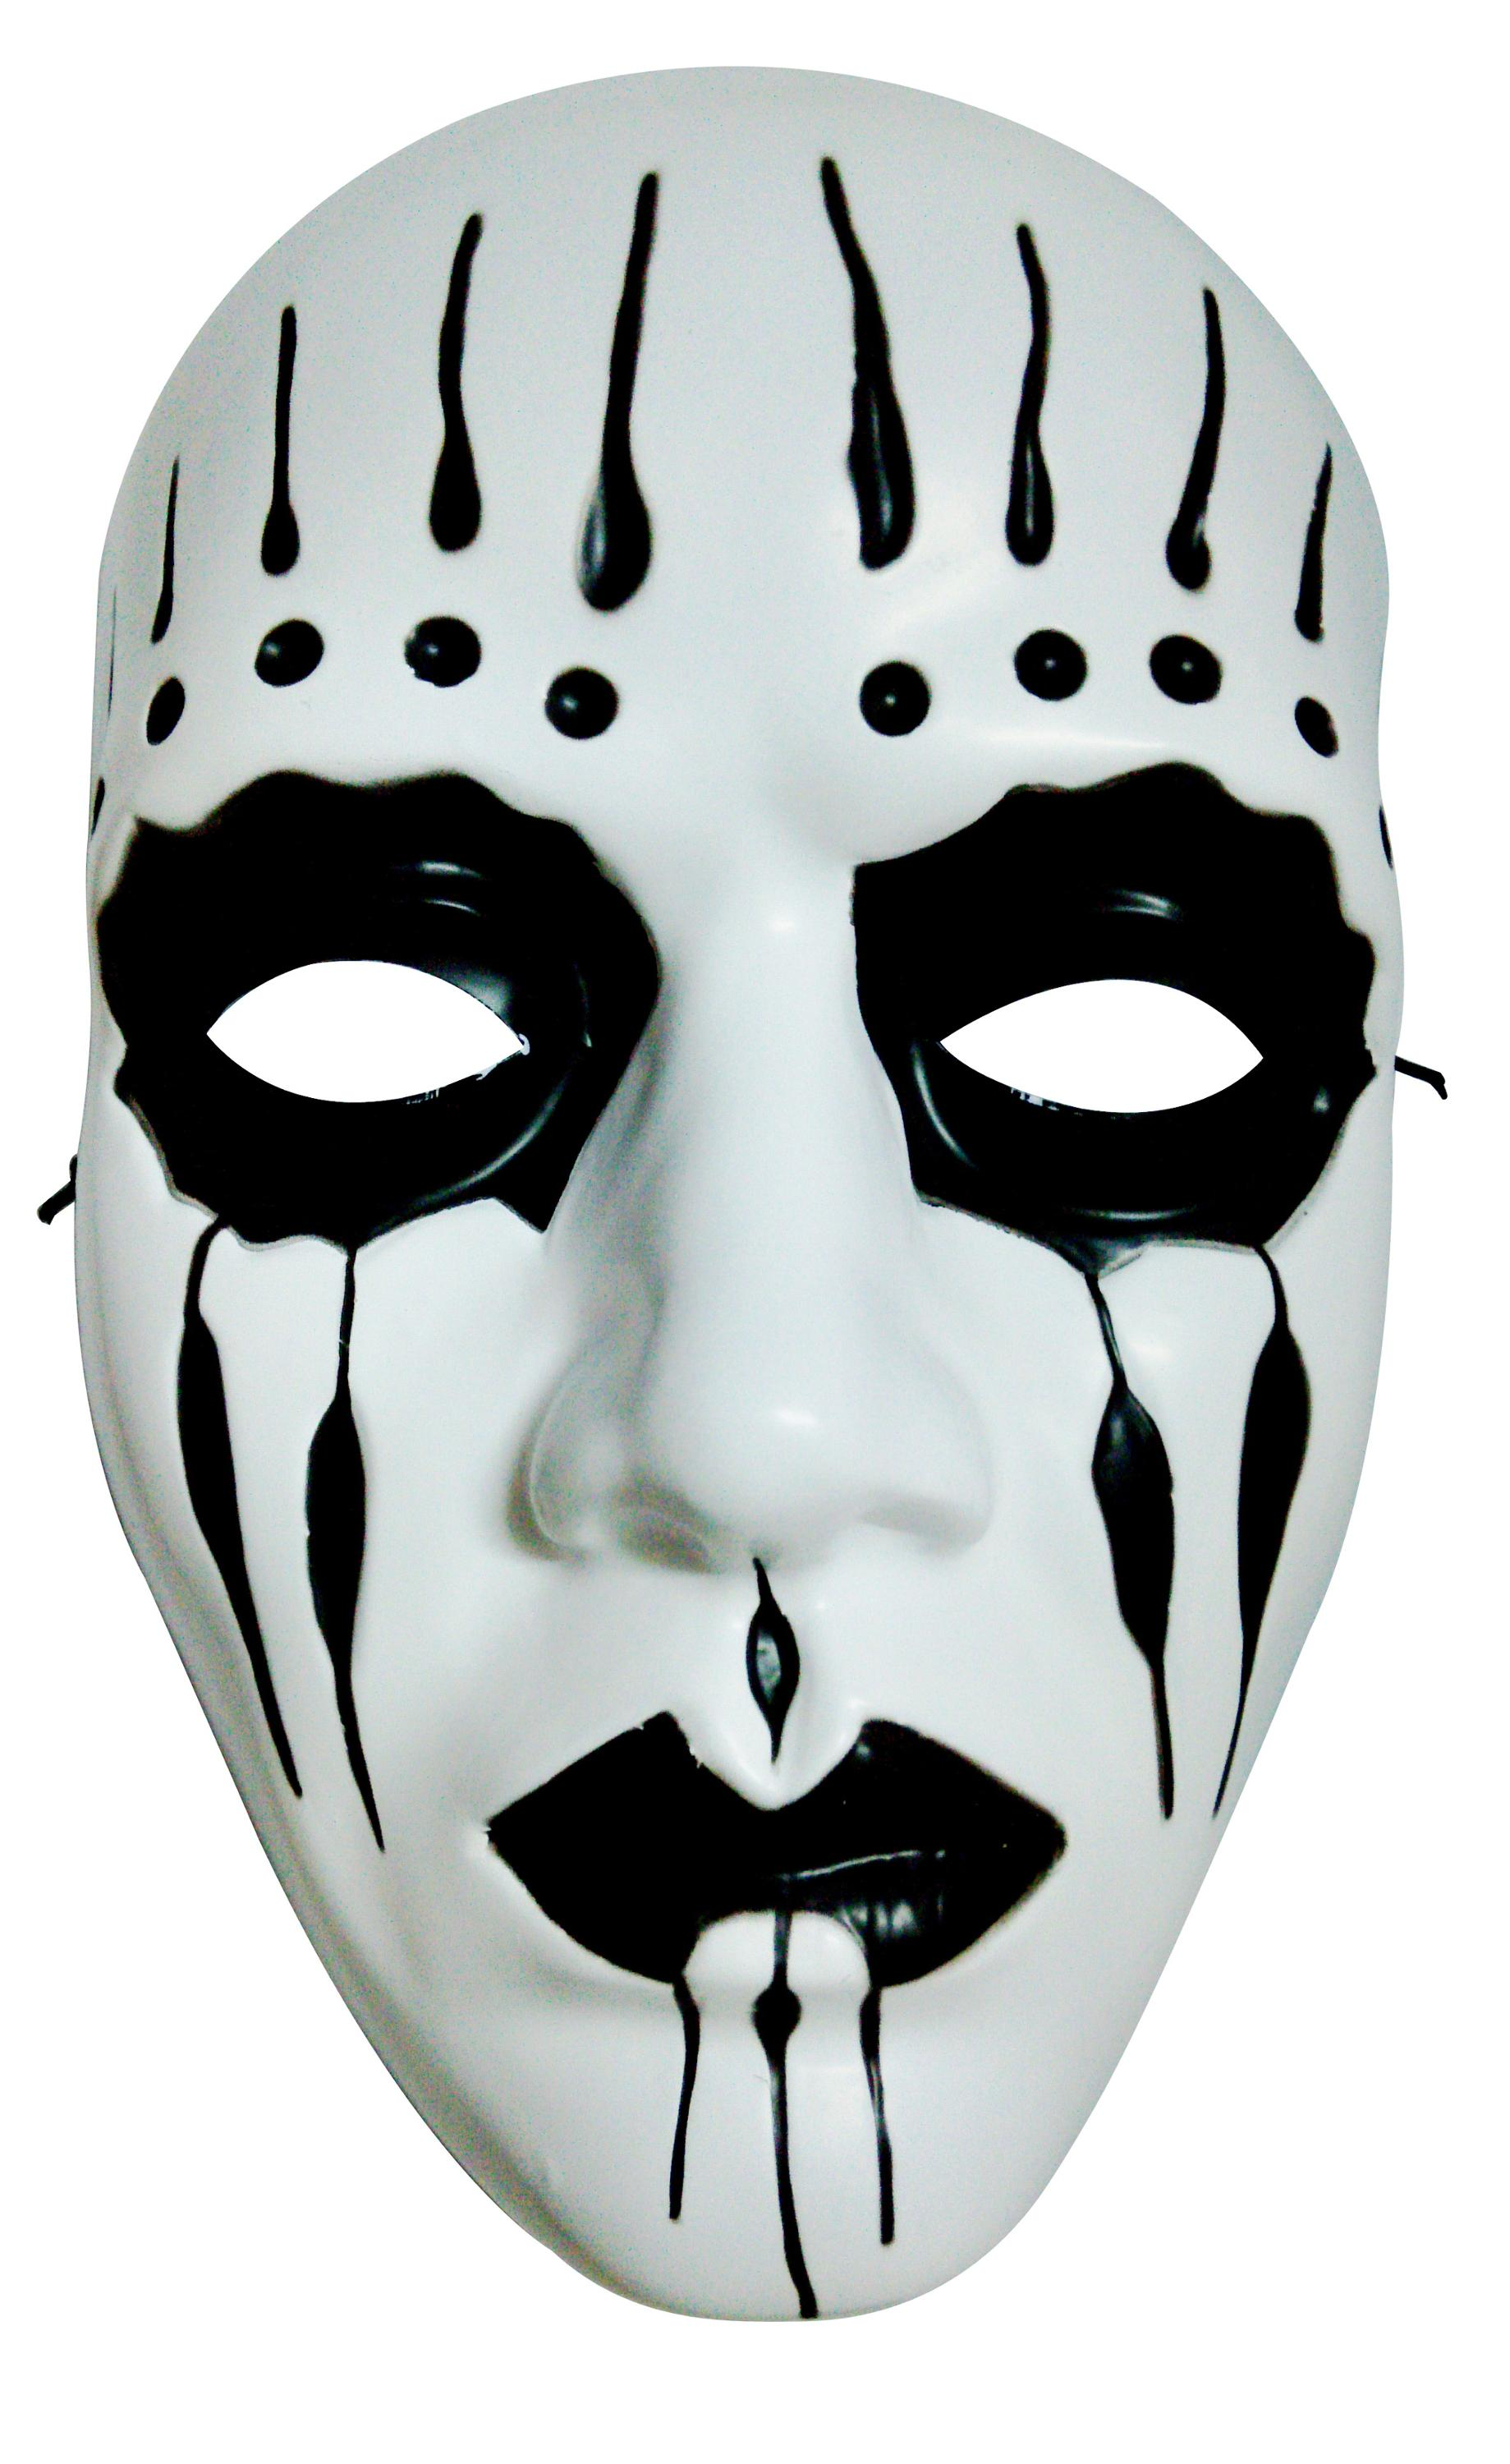 Halloween Mischievous Mask Halloween Party Gift Toy for Kids to Play